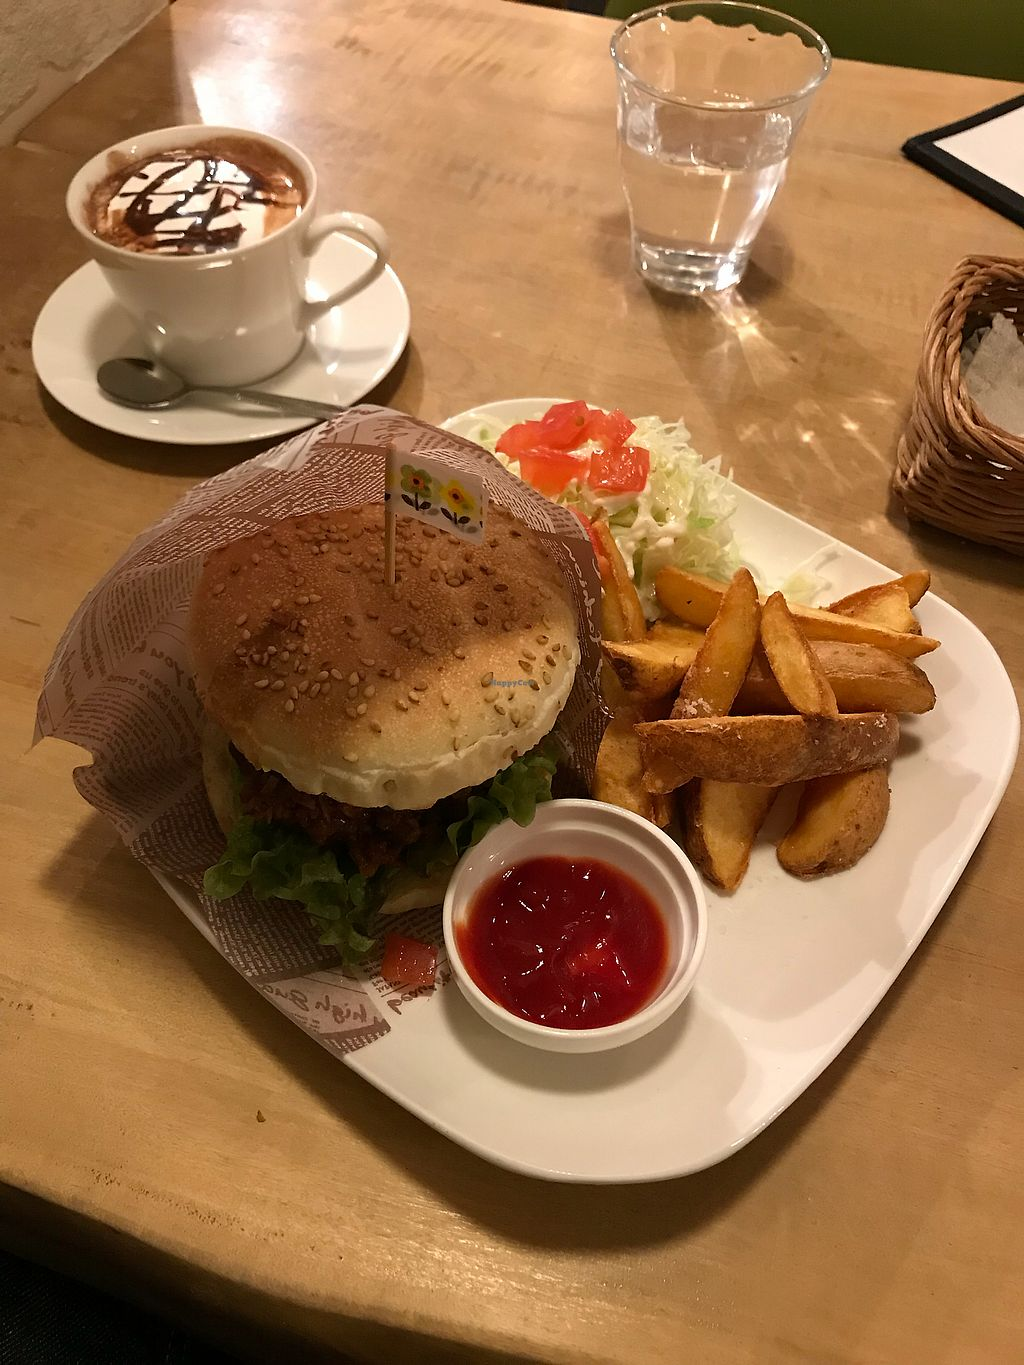 """Photo of Morpho Cafe  by <a href=""""/members/profile/Whiteeve"""">Whiteeve</a> <br/>Soy Meat Burger and Hot Chocolat <br/> November 23, 2017  - <a href='/contact/abuse/image/32107/328313'>Report</a>"""